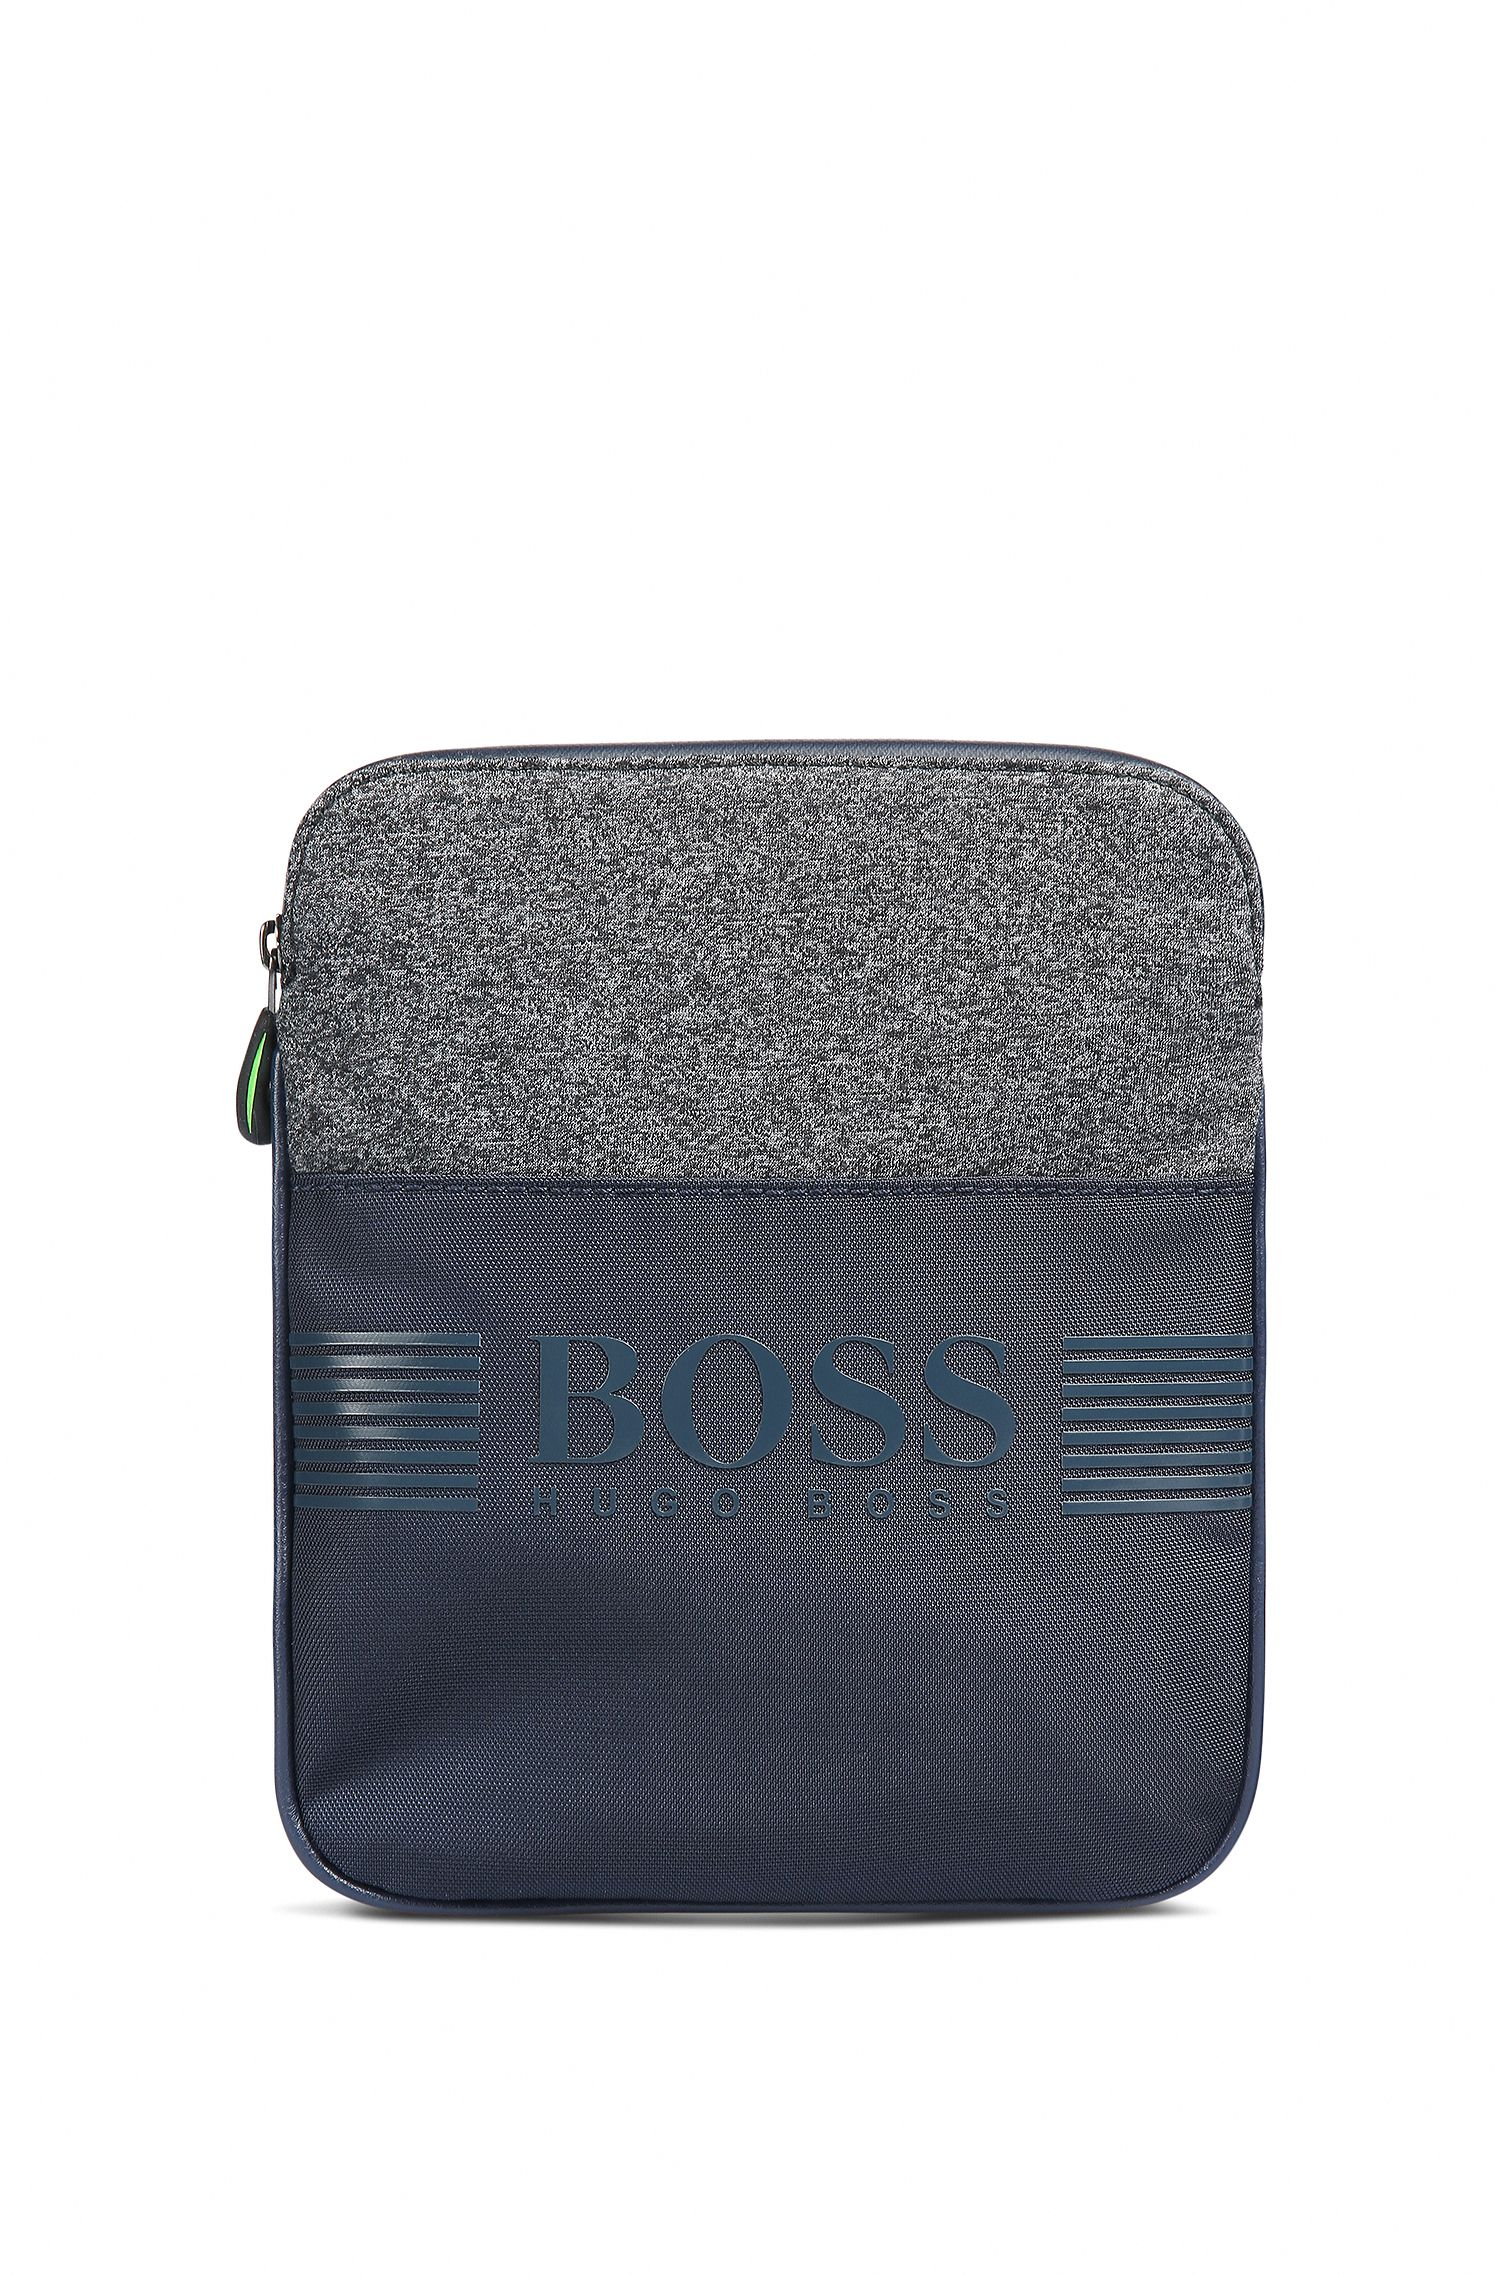 Compact cross-body bag in jersey and nylon